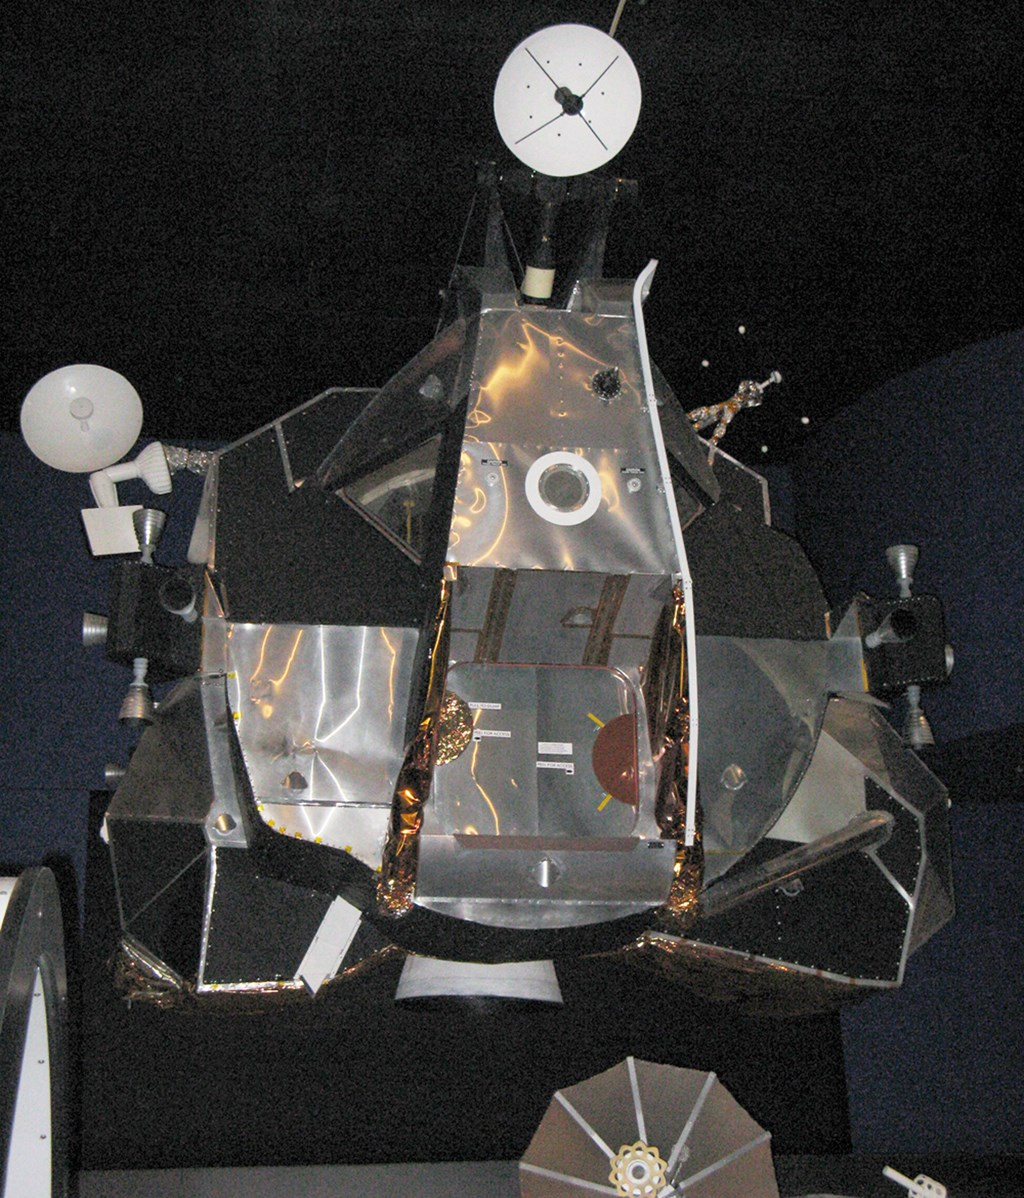 The Museum's Apollo 17 Lunar Module Mock-Up on display in the Lear Gallery